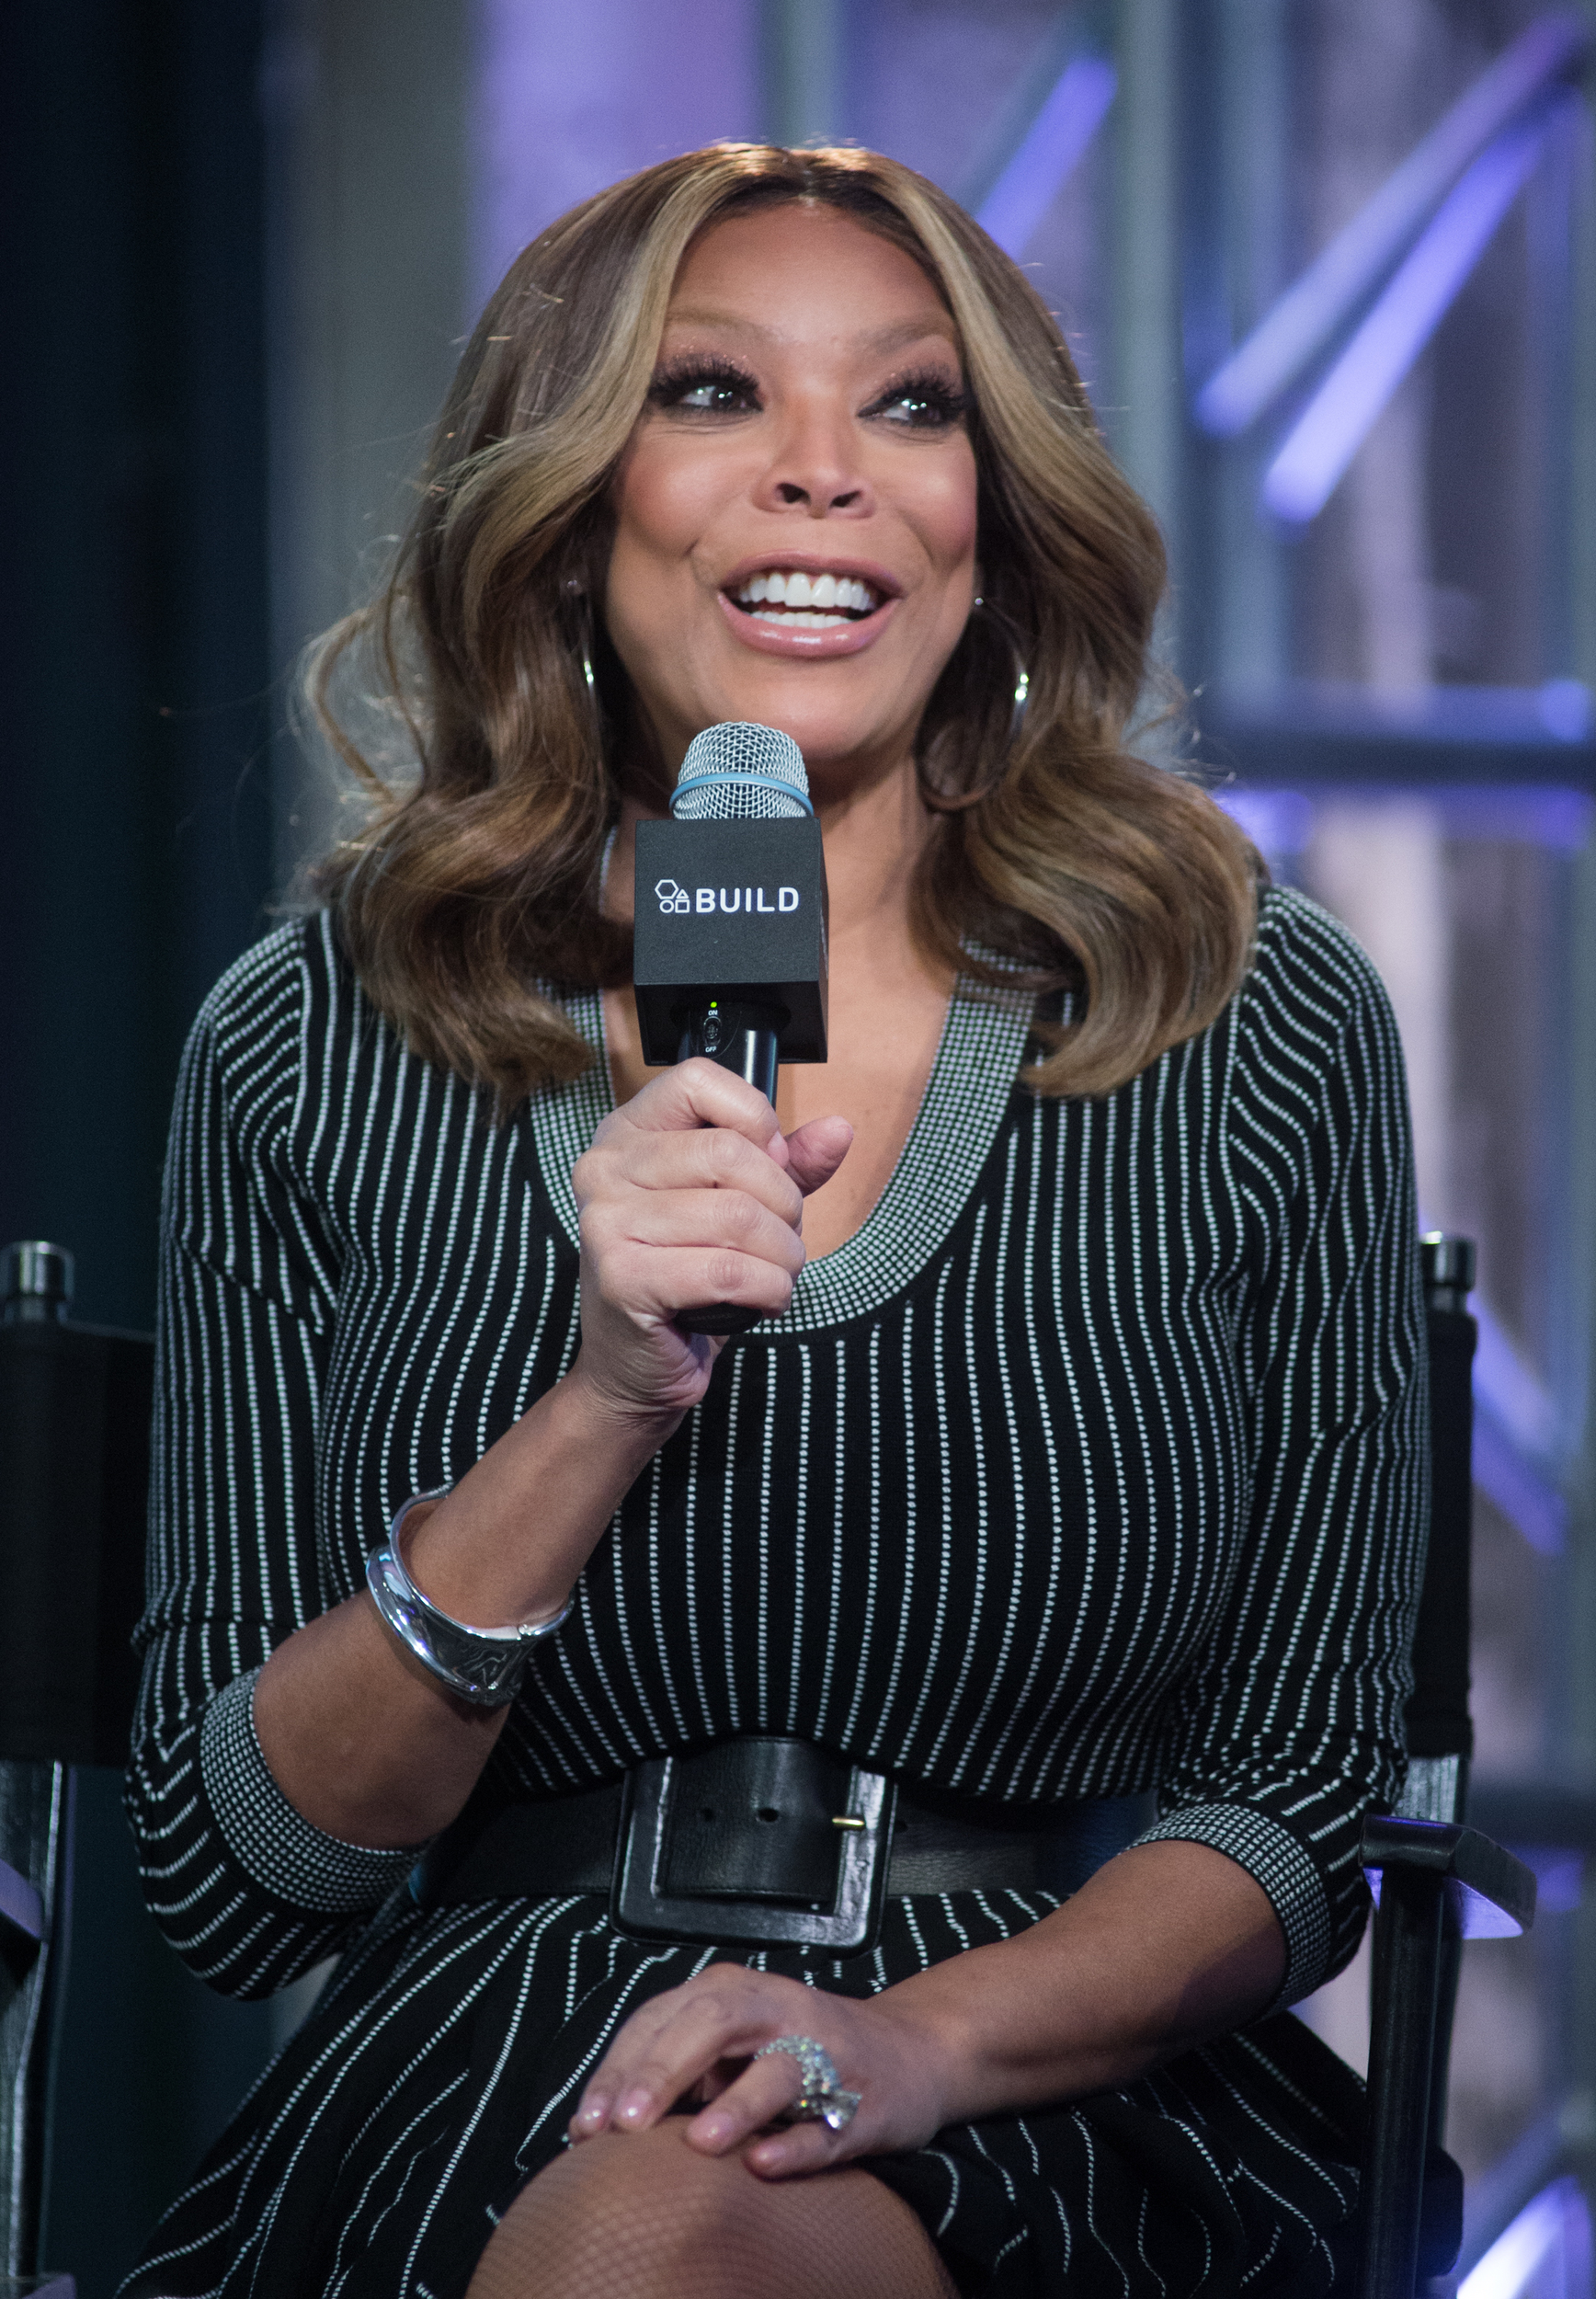 wendy williams changed executive producer credit to